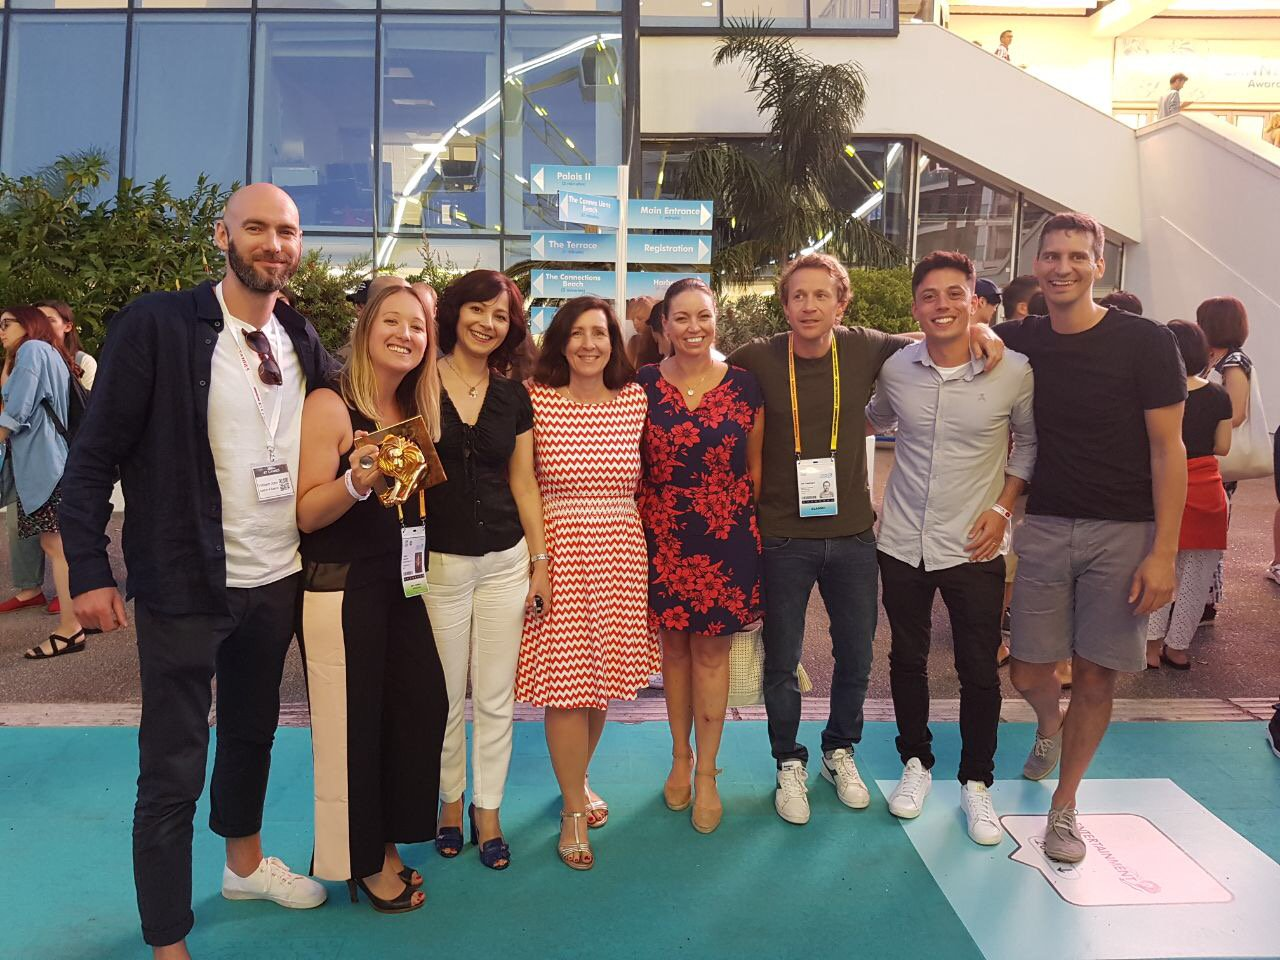 A great pic of a glorious team with their gold award! Well done @saatchilondon @Telekom_group #CannesLions https://t.co/VMv1Ocr9ml